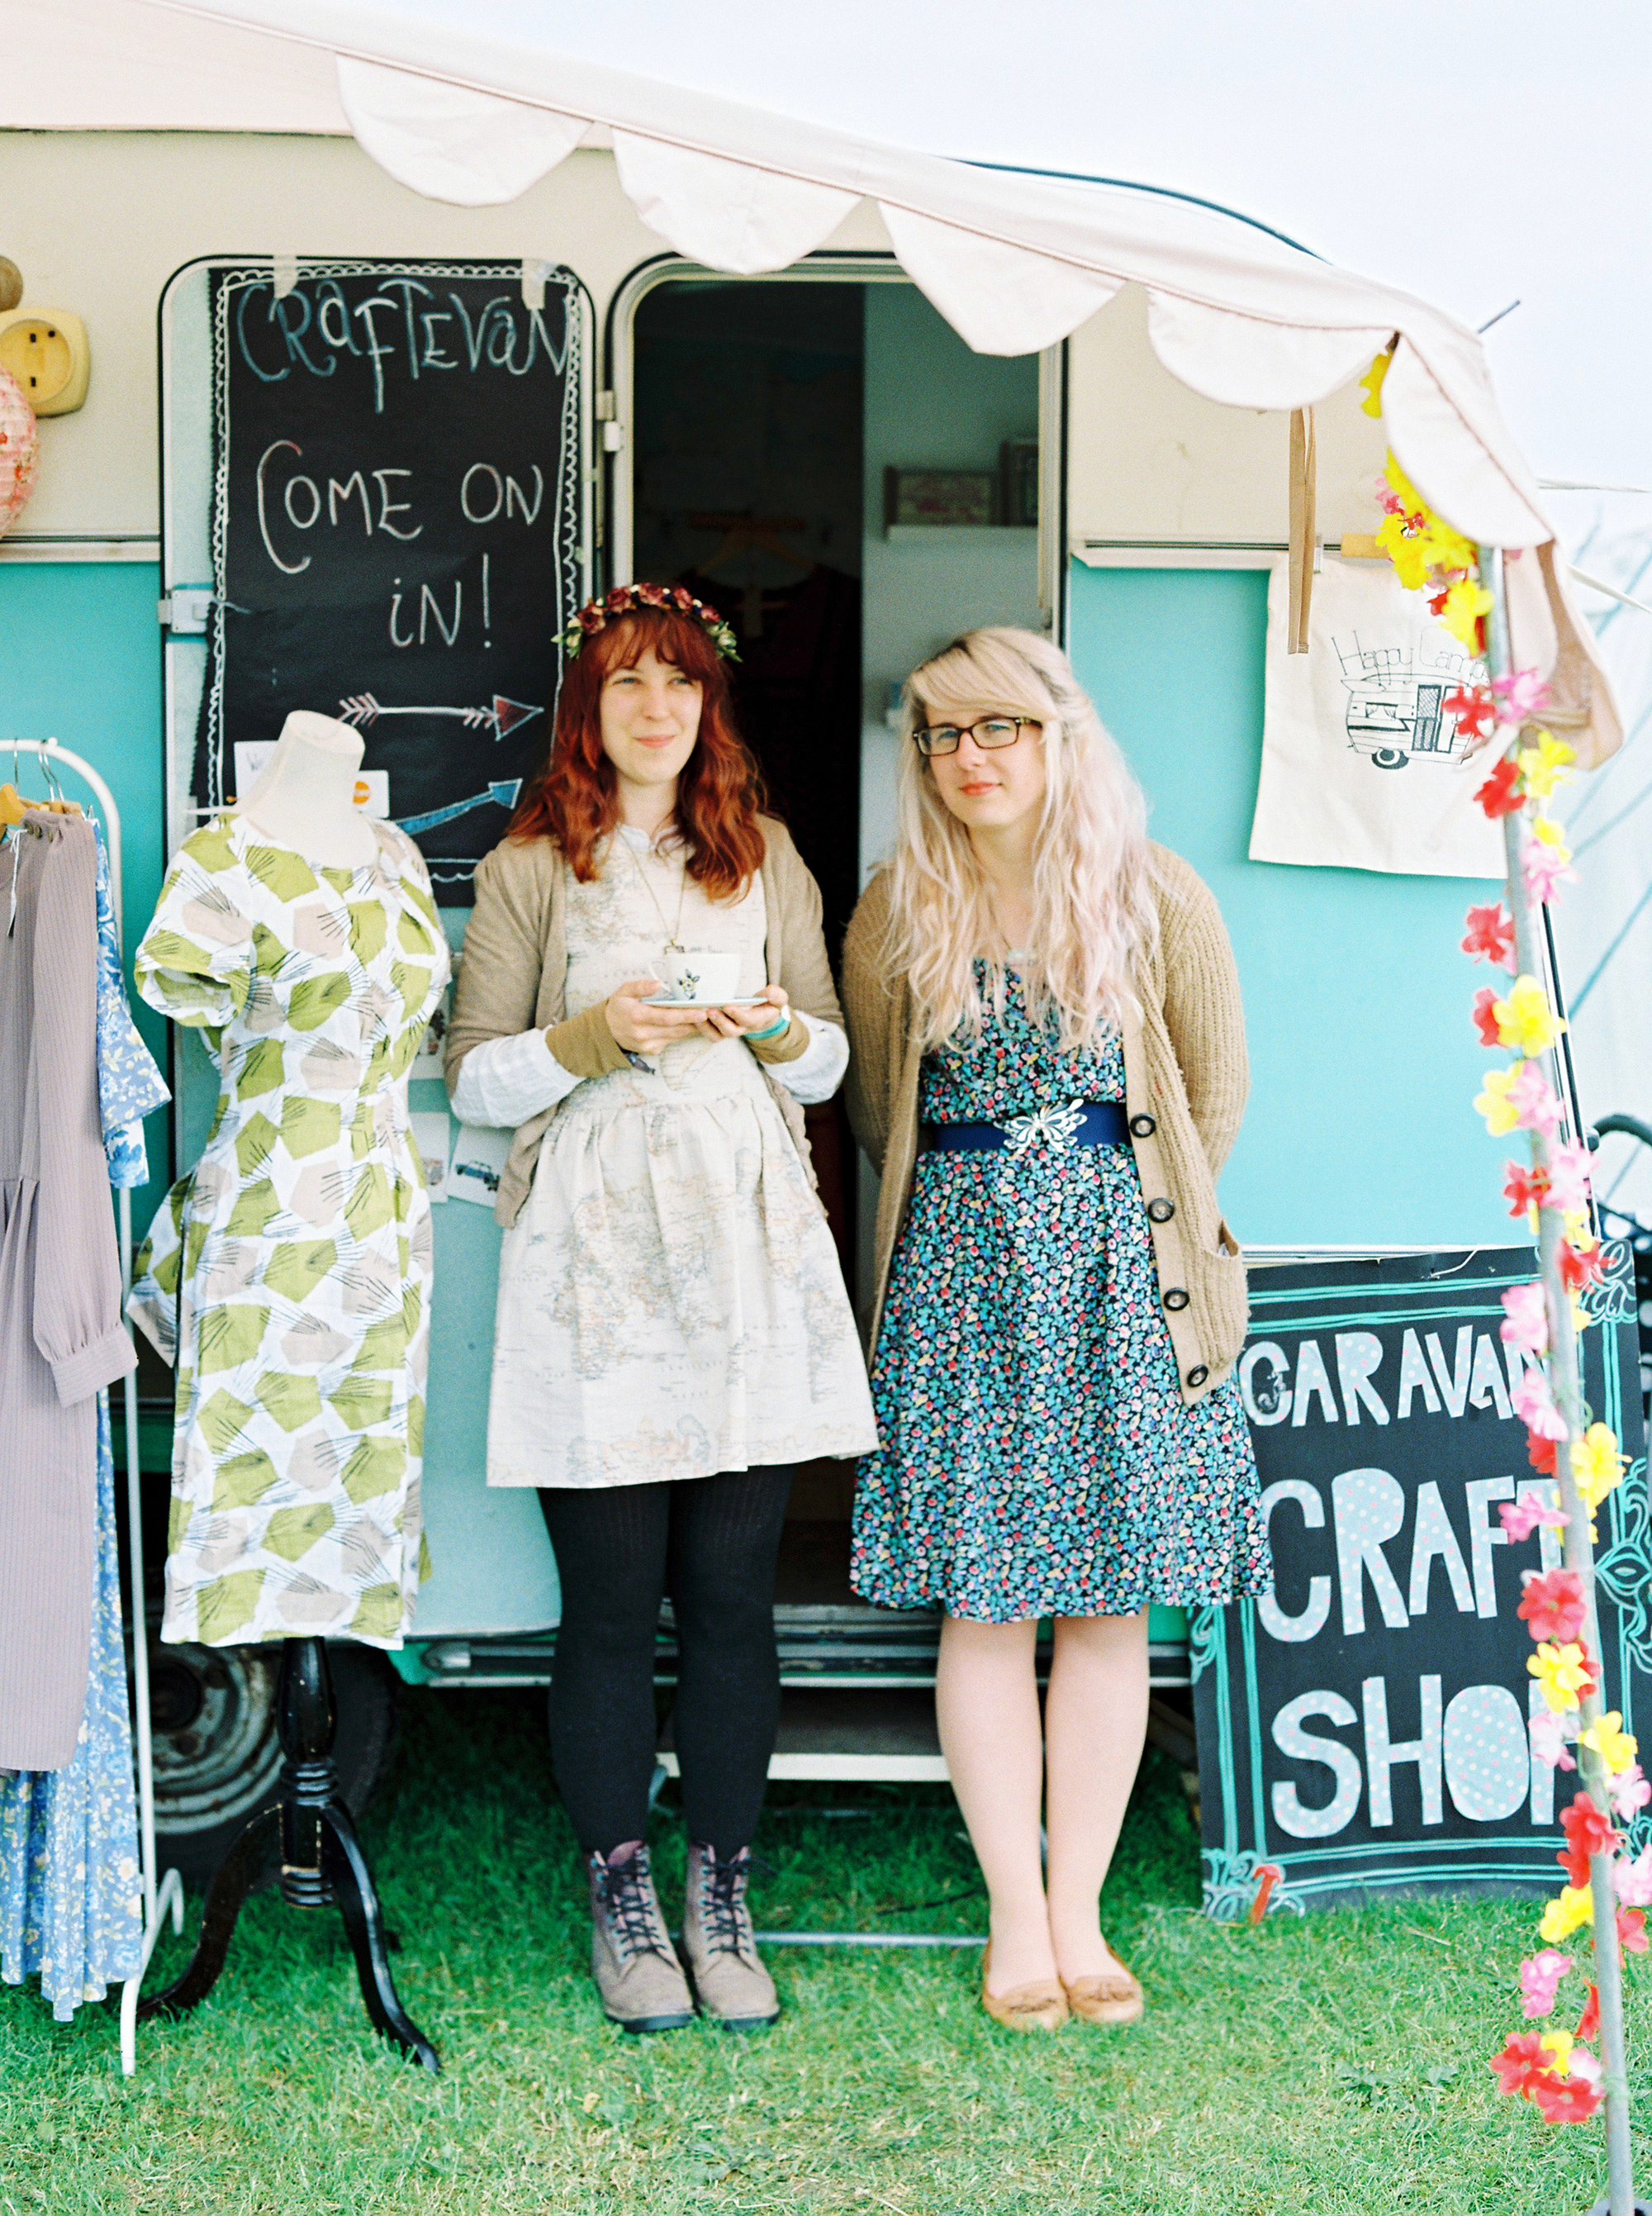 Craftevan | Cumbria - Craftevan is a wonderful, portable space created by the very talented Julie, she is pictured here with the equally talented Kim. Julie takes her van to various festivals around the country to sell her homemade nostalgic travel inspired goods! I really loved the whole vibe so I took these photos because I just couldn't not!